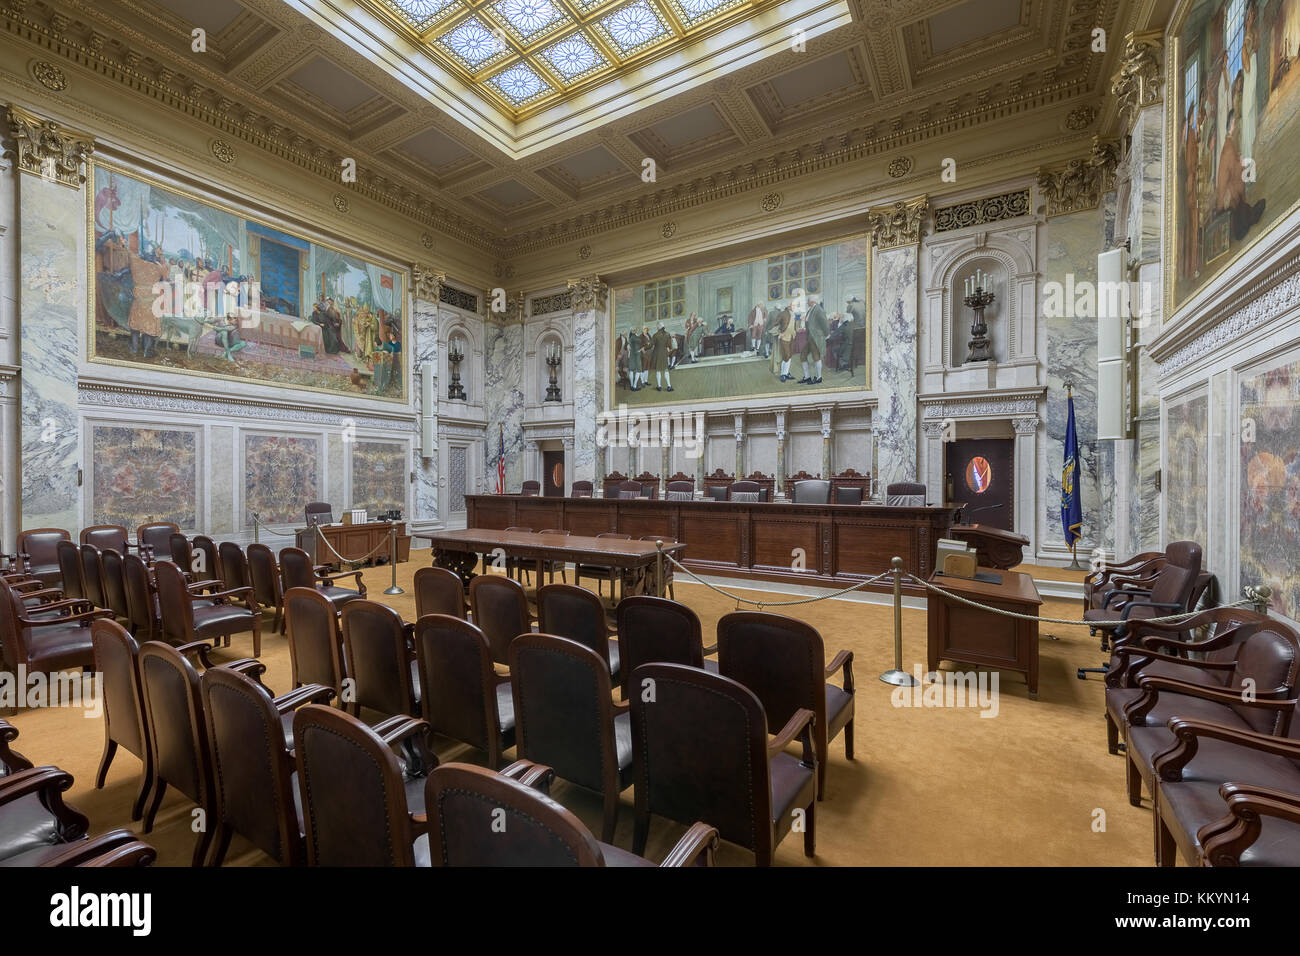 Supreme Court courtroom in the Wisconsin State Capitol in Madison, Wisconsin - Stock Image